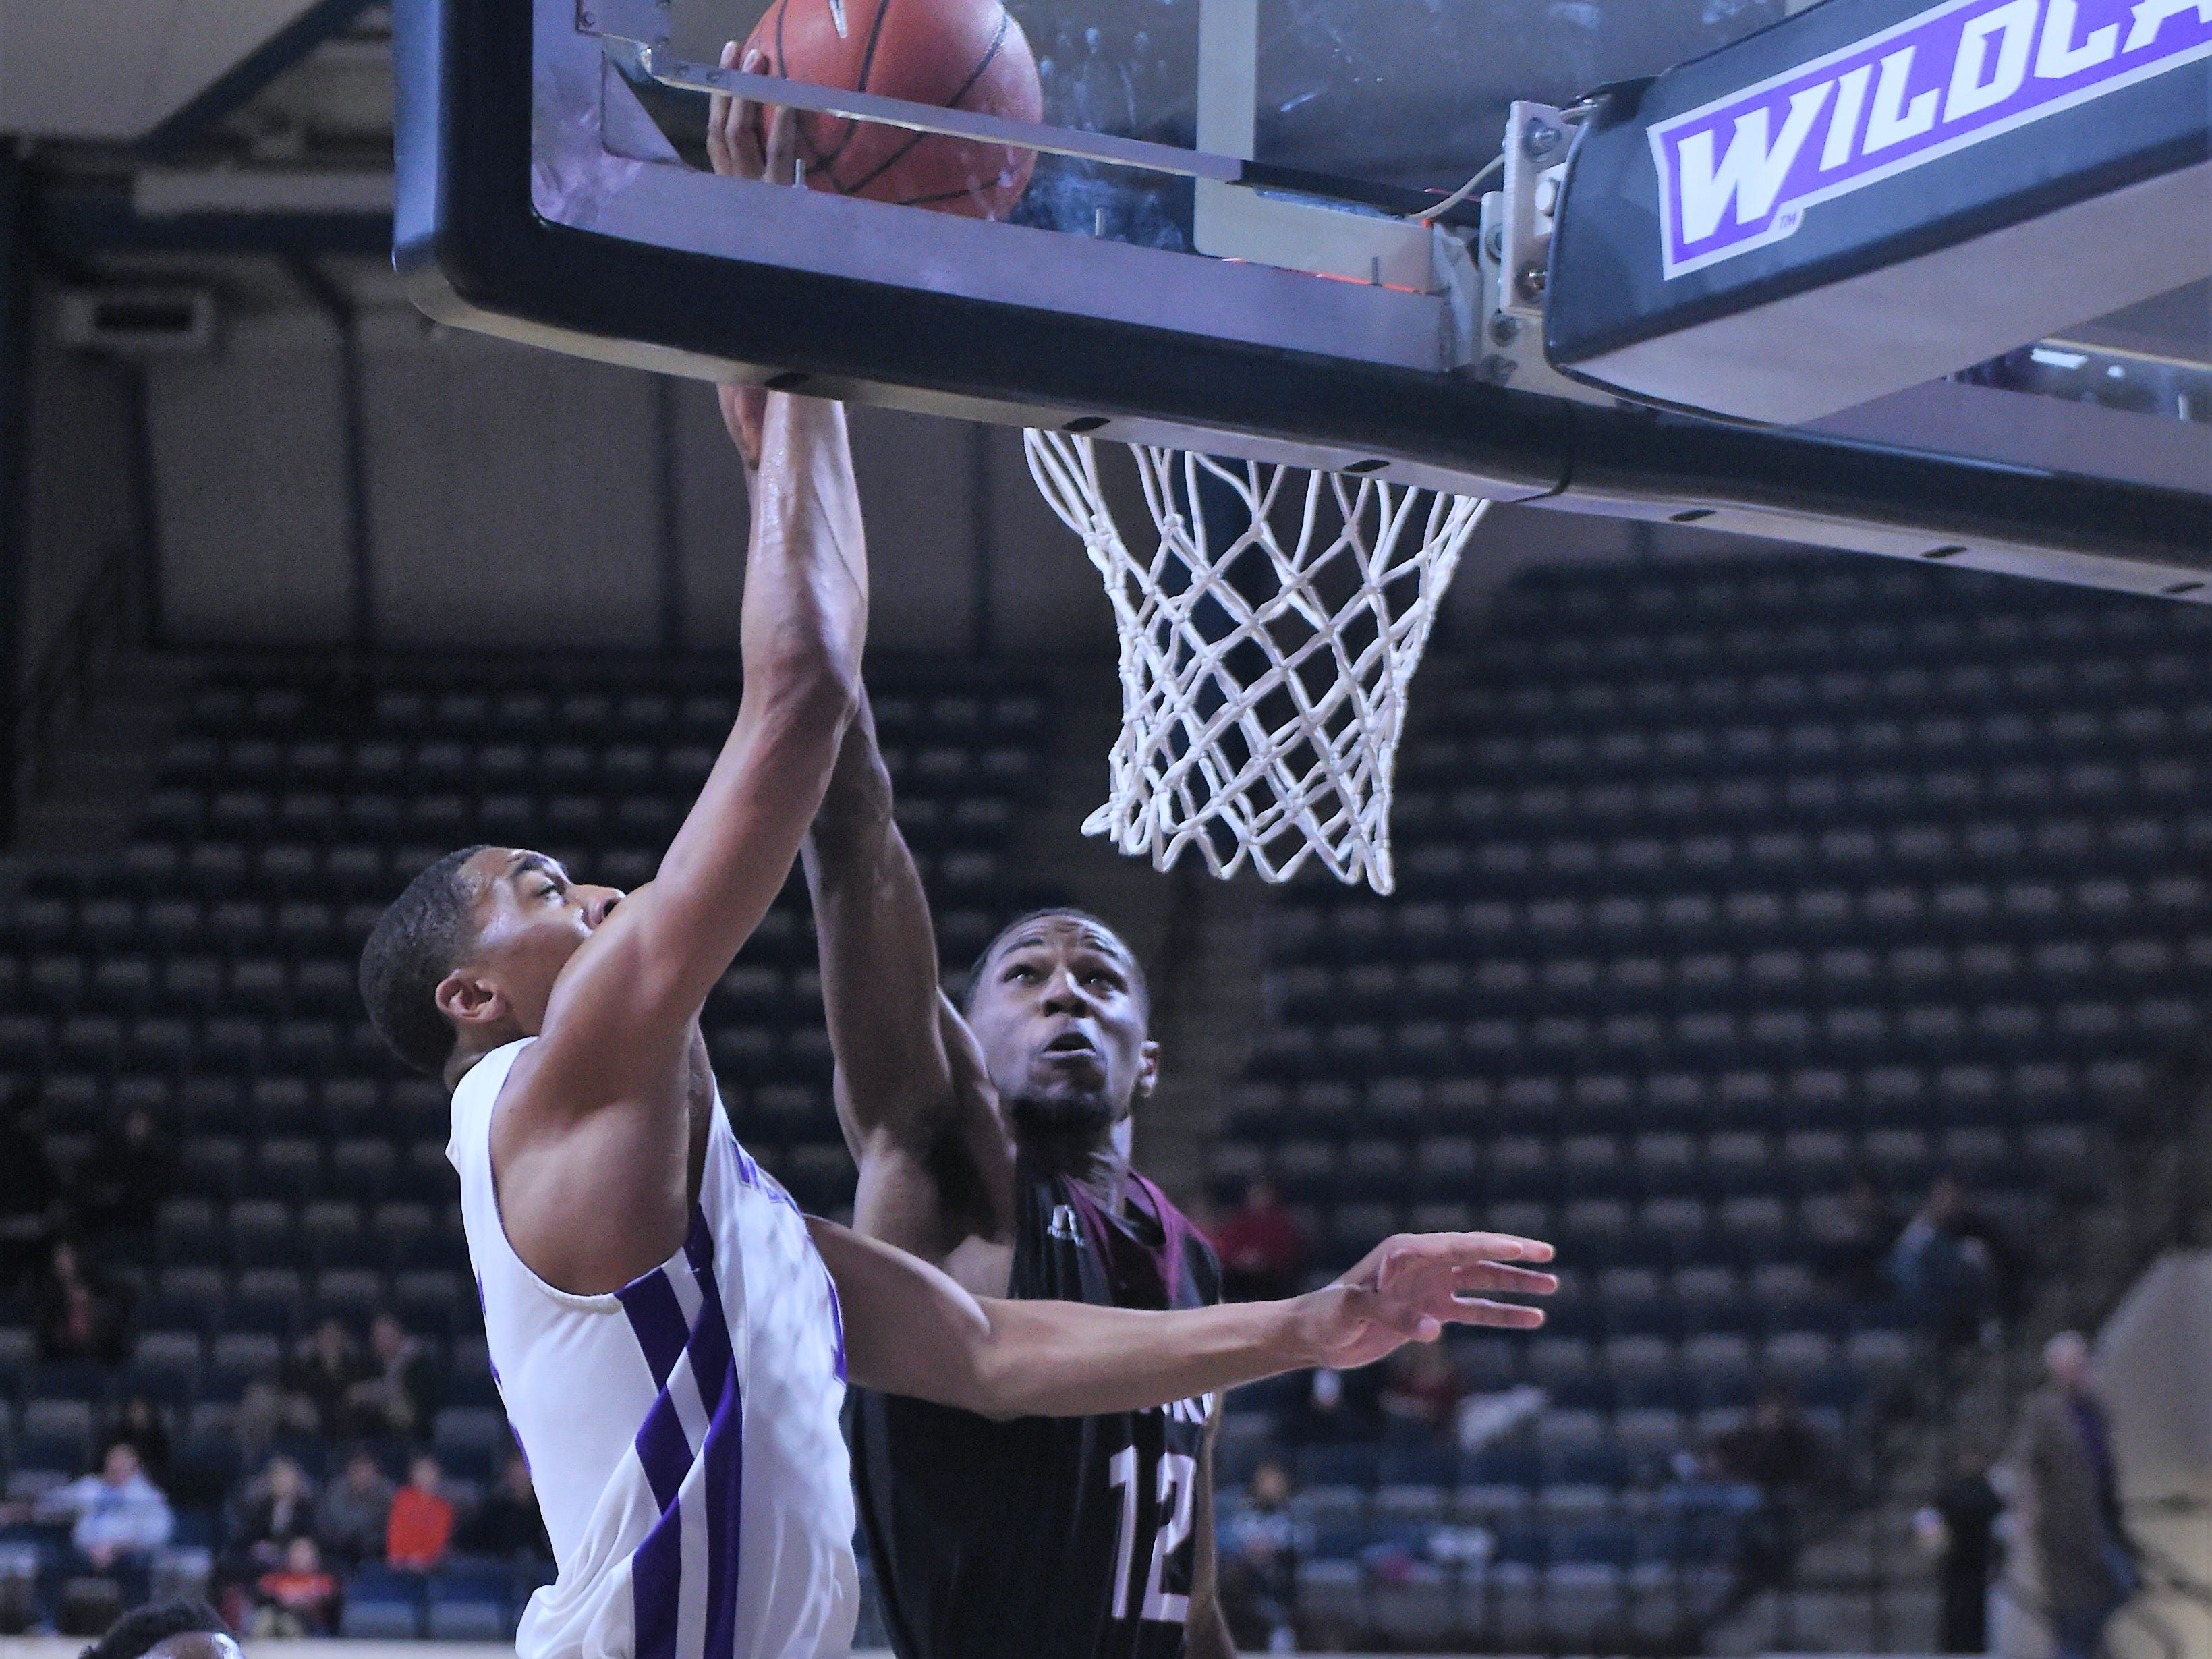 McMurry's Khalil Butler (12) blocks an ACU shot attempt during Saturday's game at Moody Coliseum.